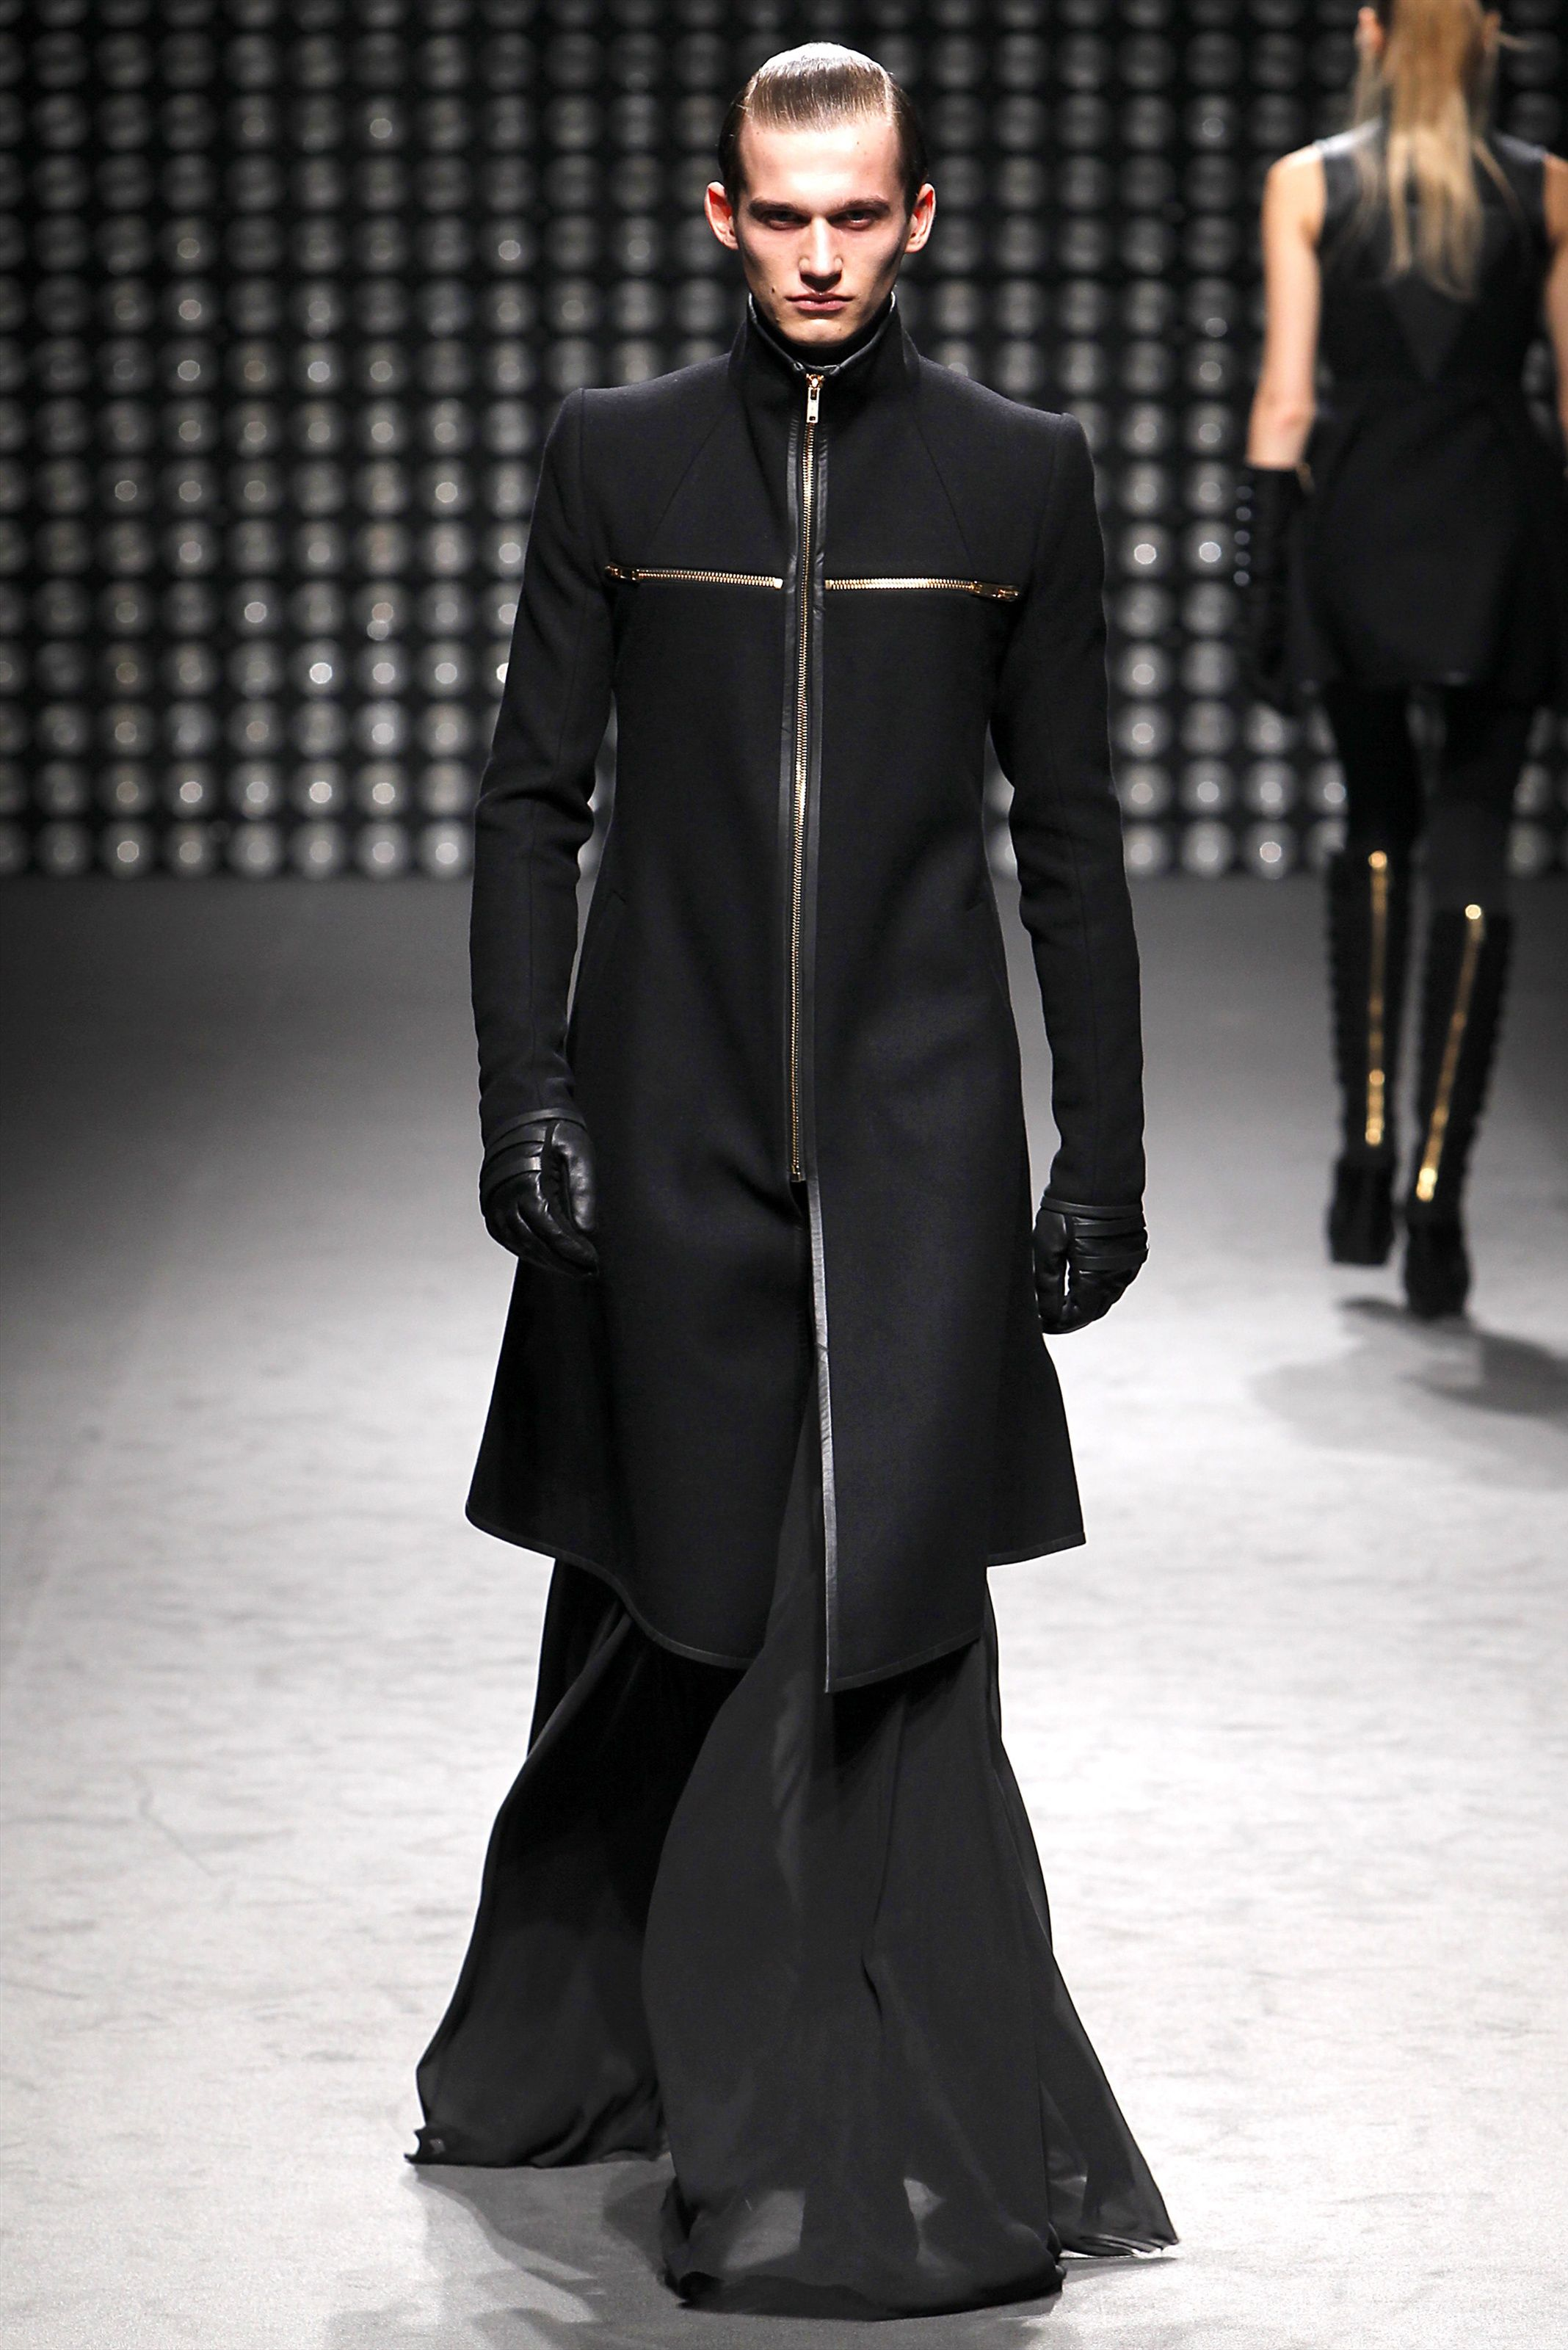 1a98719051bd Gareth Pugh - Men Futuristic Fashion Fall Winter 2011-2012 - Shows -  Vogue.it